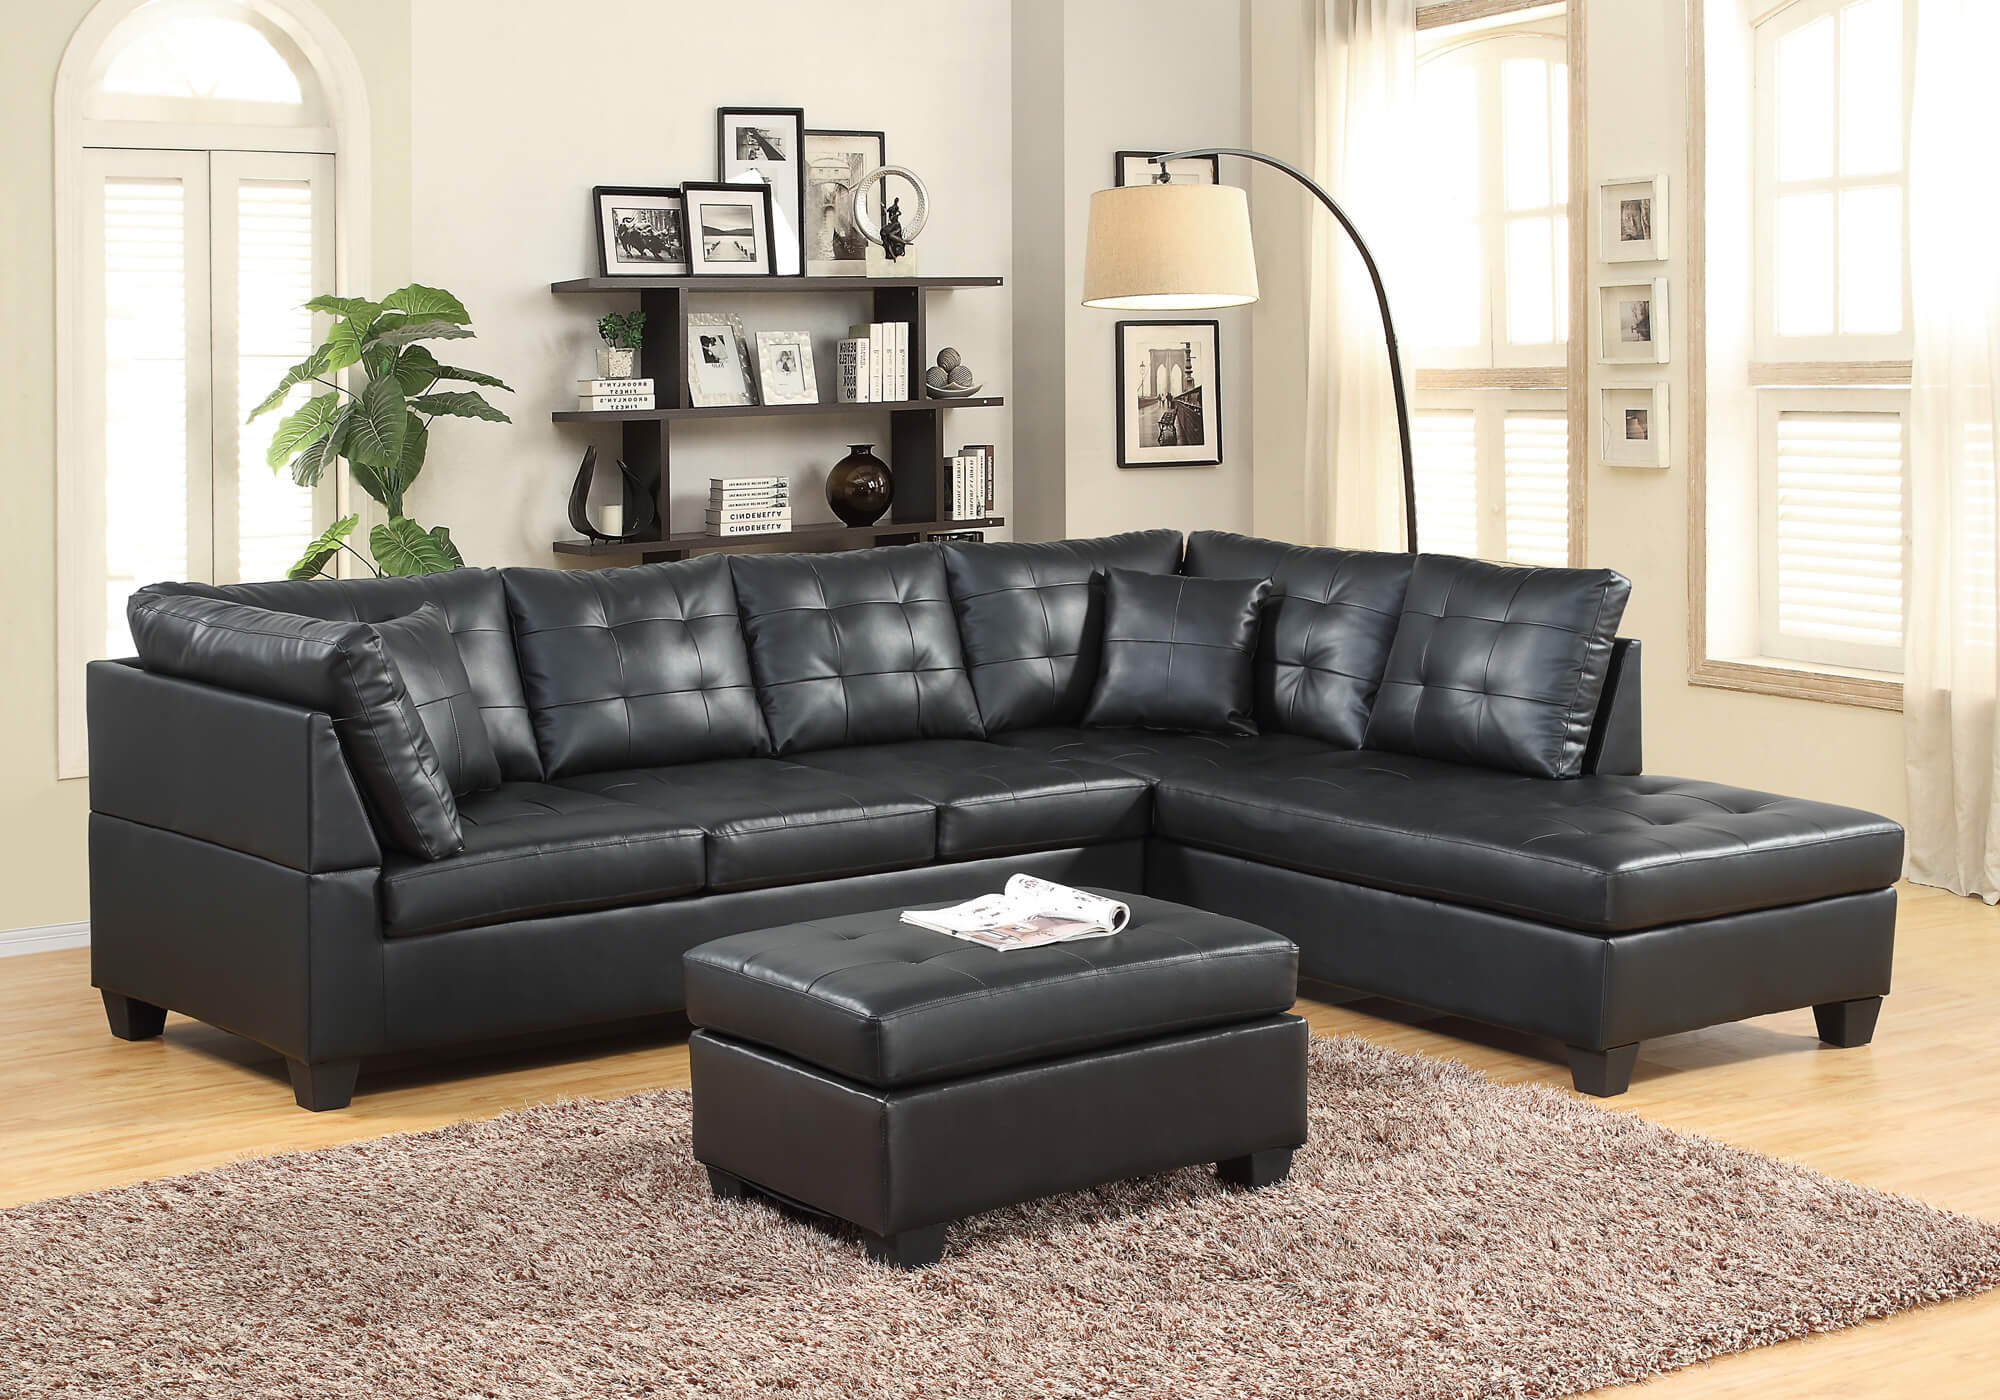 Black leather like sectiona sectional sofa sets for Leather sofa family room